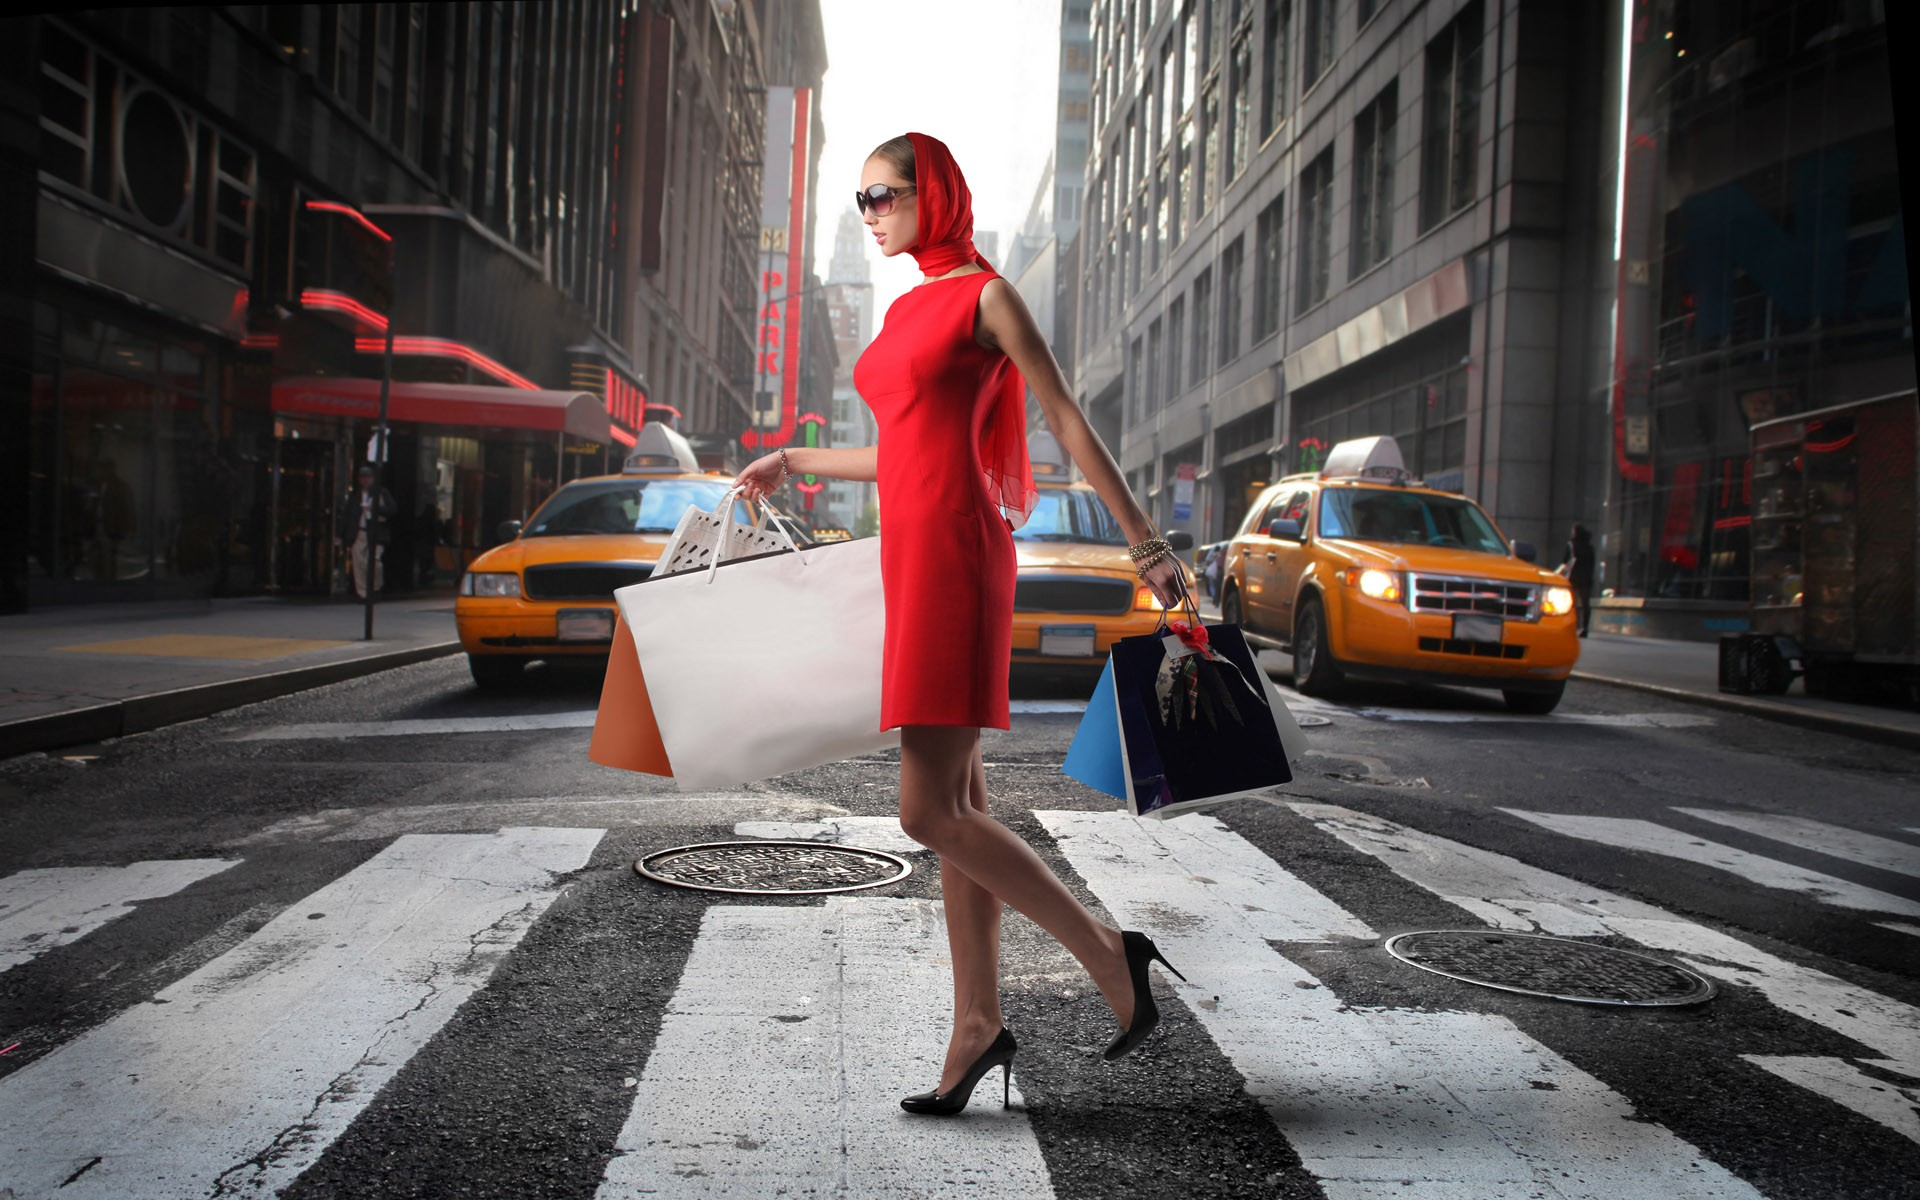 Women Streets Shopping Crossing High Heels Taxi Red Dress